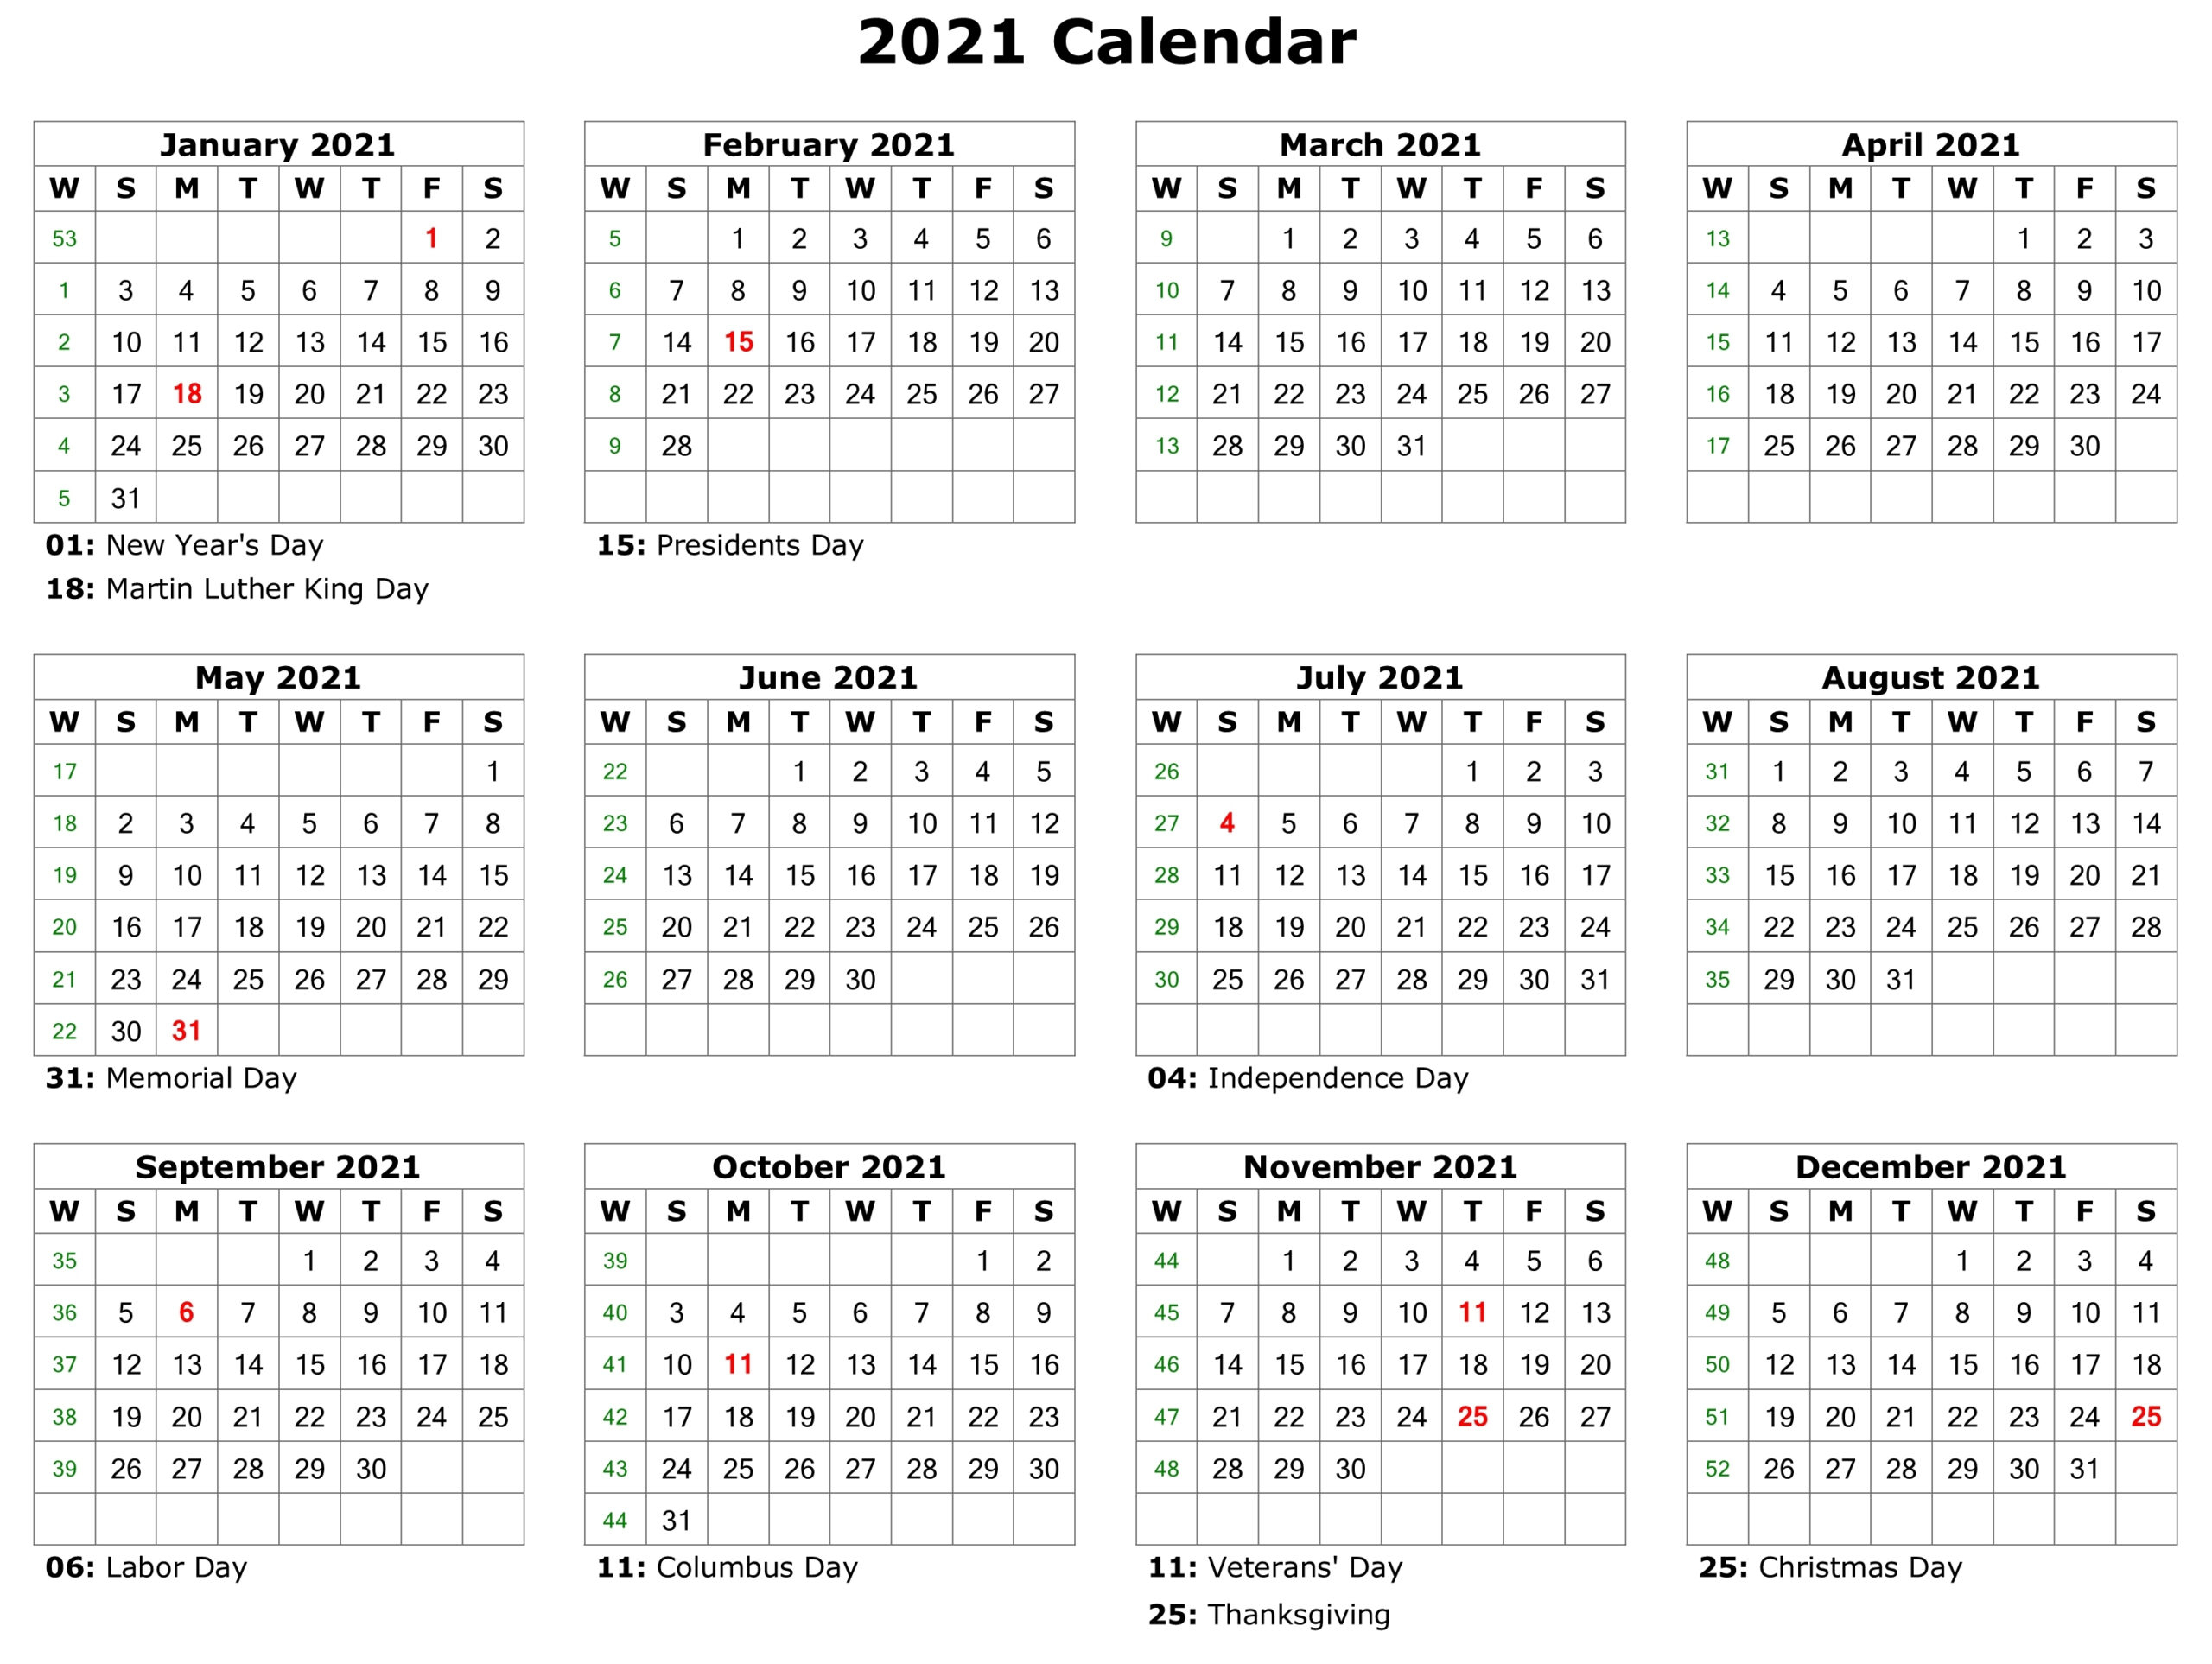 2021 Calendar South Australia | Printablecalendarsfor2021 throughout 2021 Calendar Hong Kong